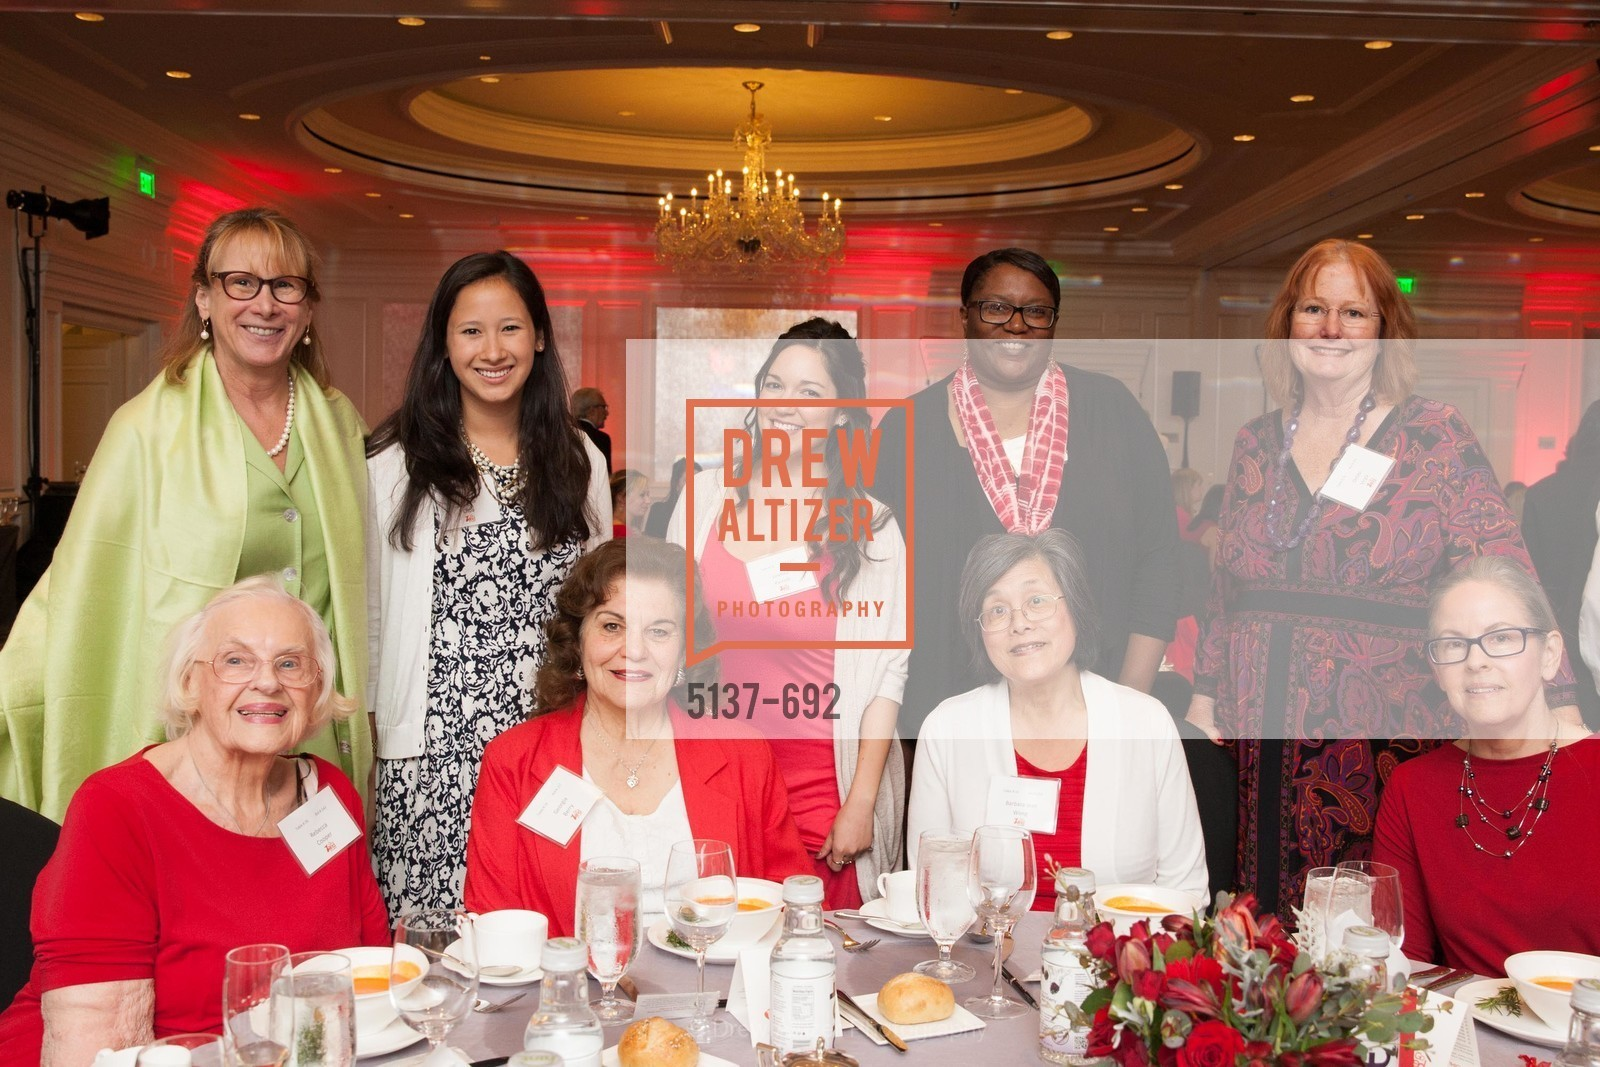 Rebecca Cooper, Georgia Berry, Lindsey Perrelli, Barbara Wong, Debbie Vega, 2015 GoRed for Women Luncheon, US, May 2nd, 2015,Drew Altizer, Drew Altizer Photography, full-service agency, private events, San Francisco photographer, photographer california